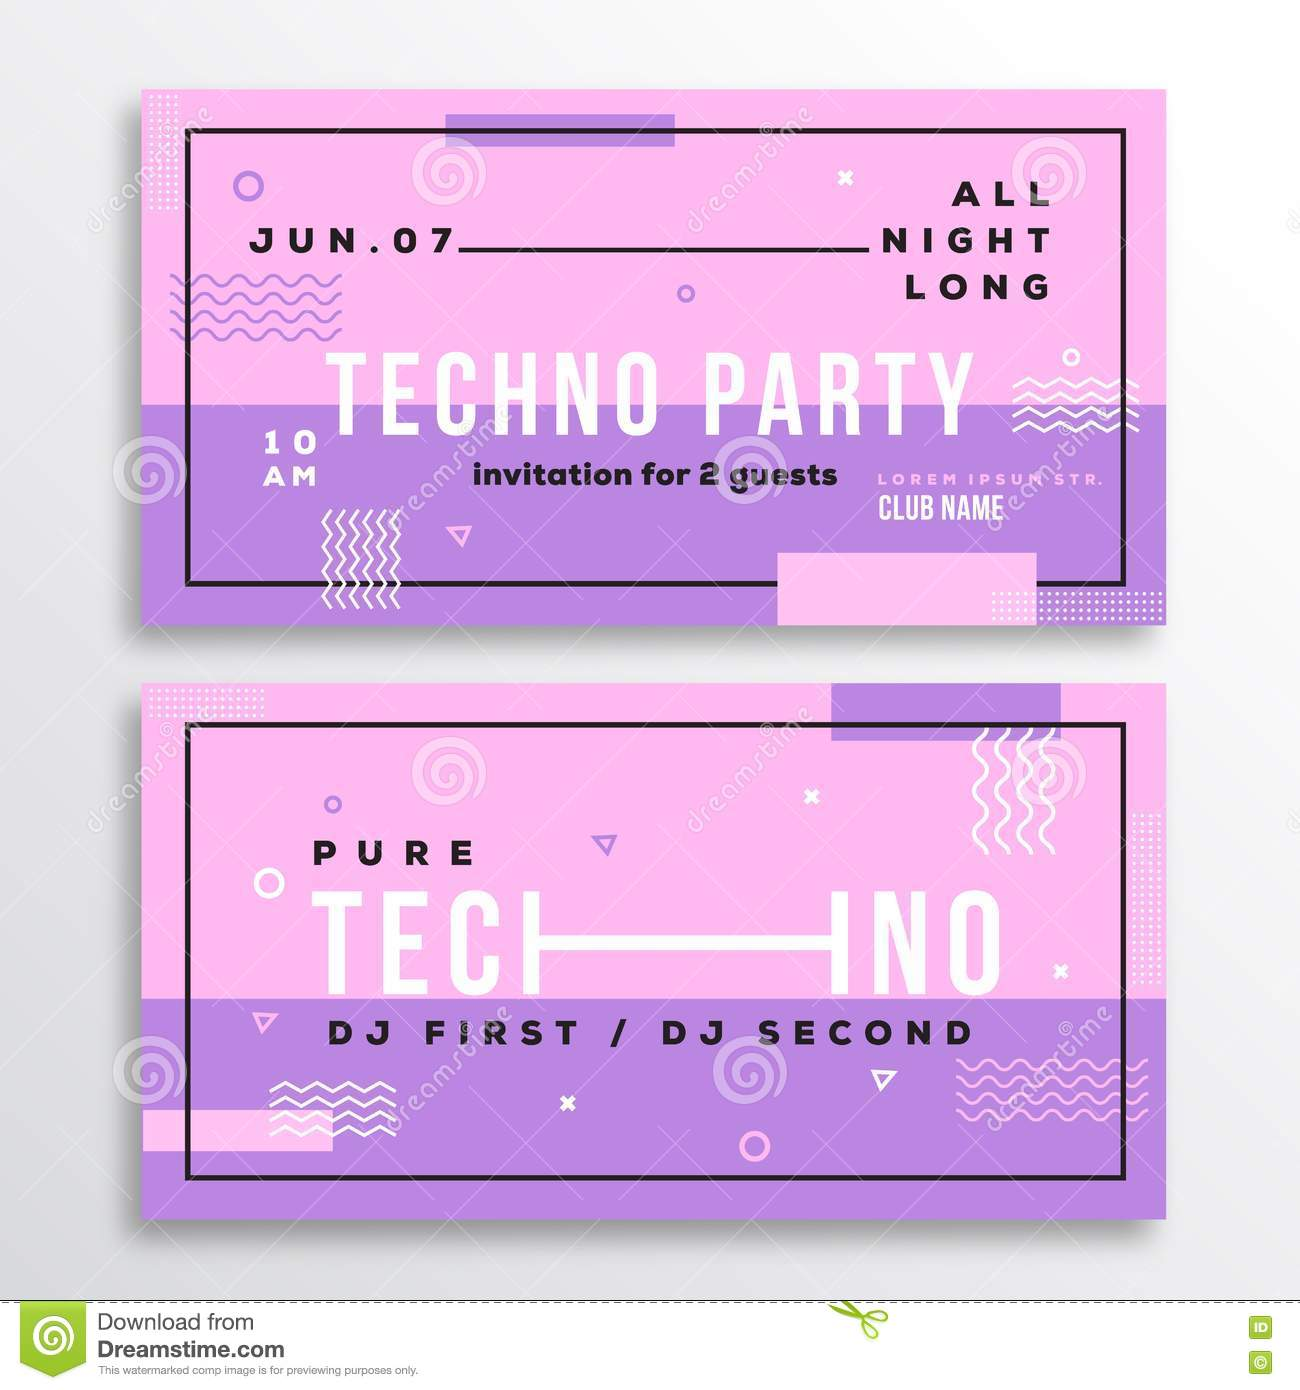 night techno party club invitation card or flyer template